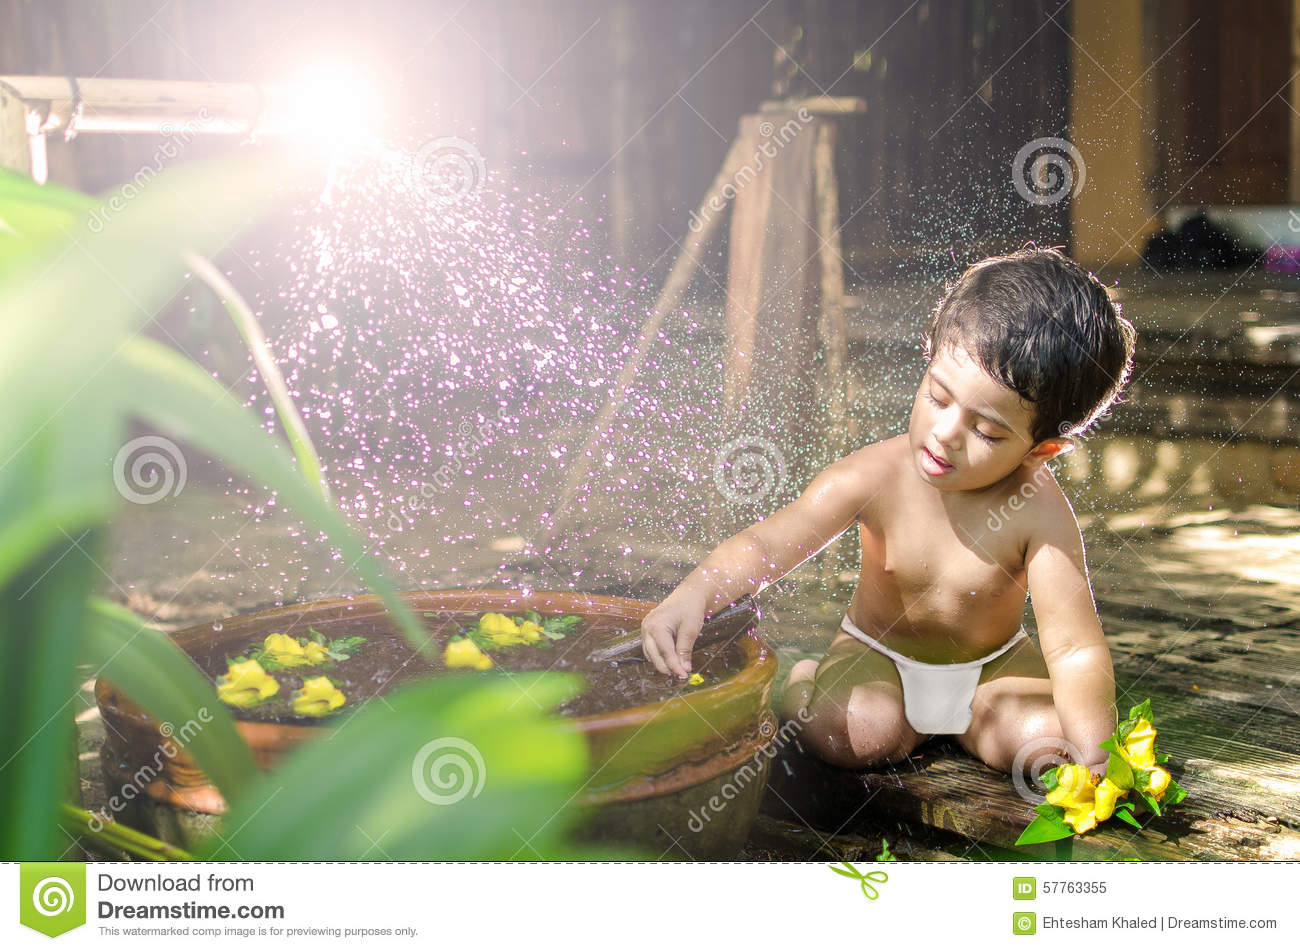 cute little baby girl bathing stock image - image of home, garden